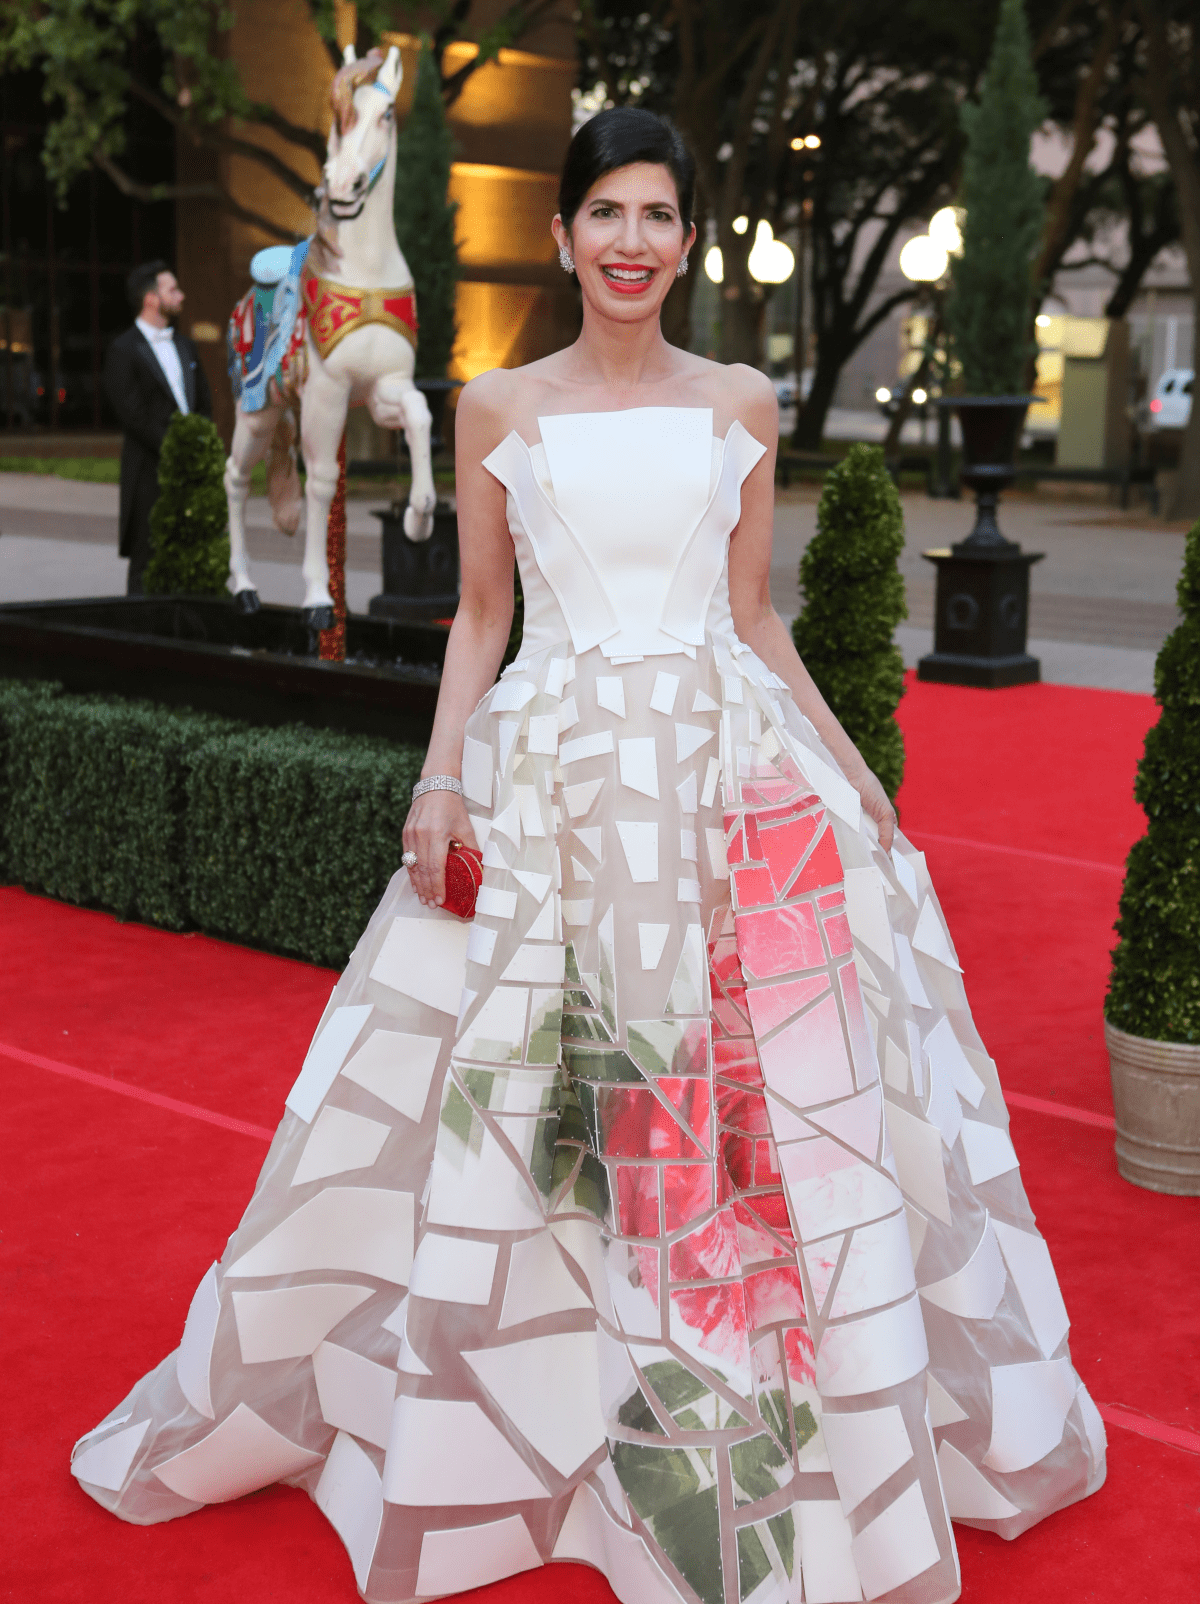 Fabulous ball gowns create a designer fashion flurry at white-tie ...